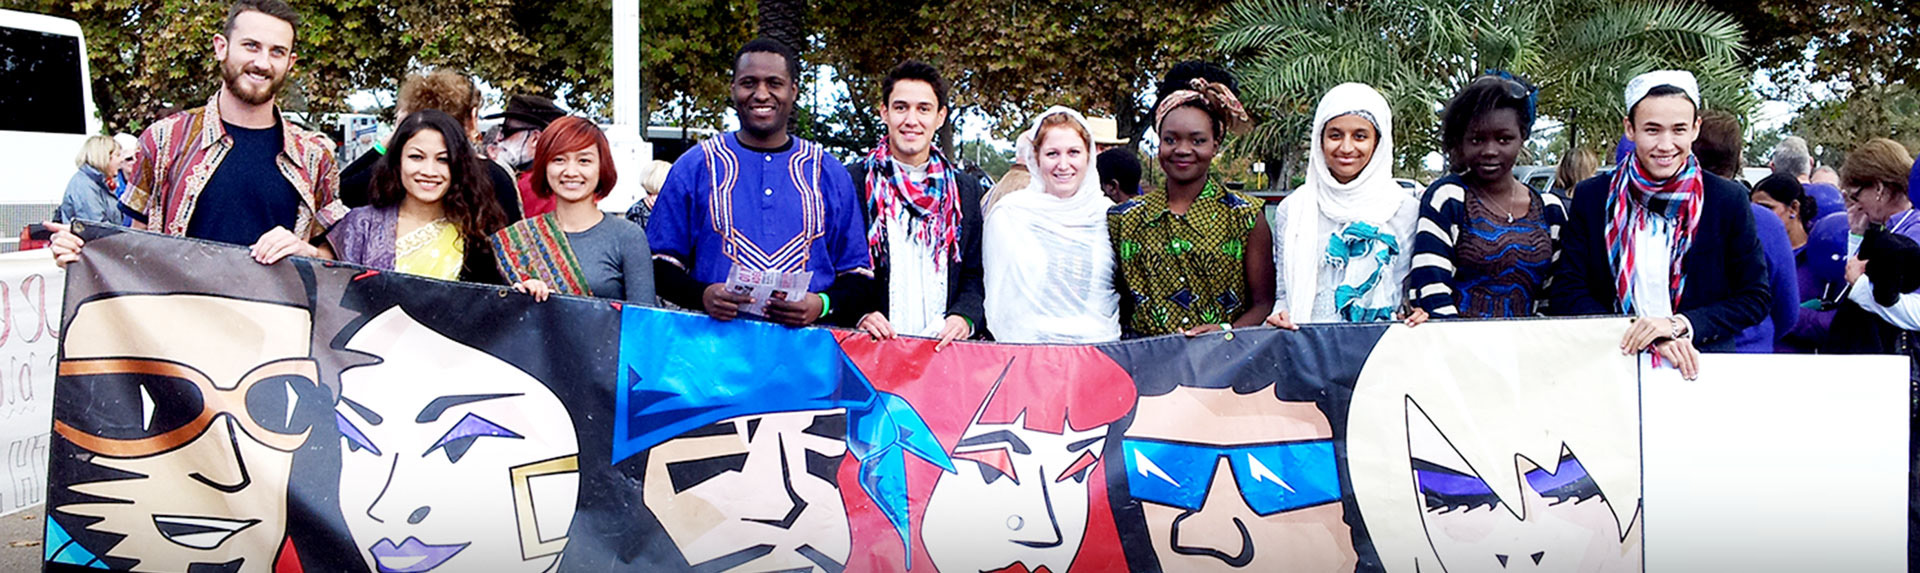 multicultural youth south organisation that provides a diverse range of services and programs to support multicultural young people and young families living in south